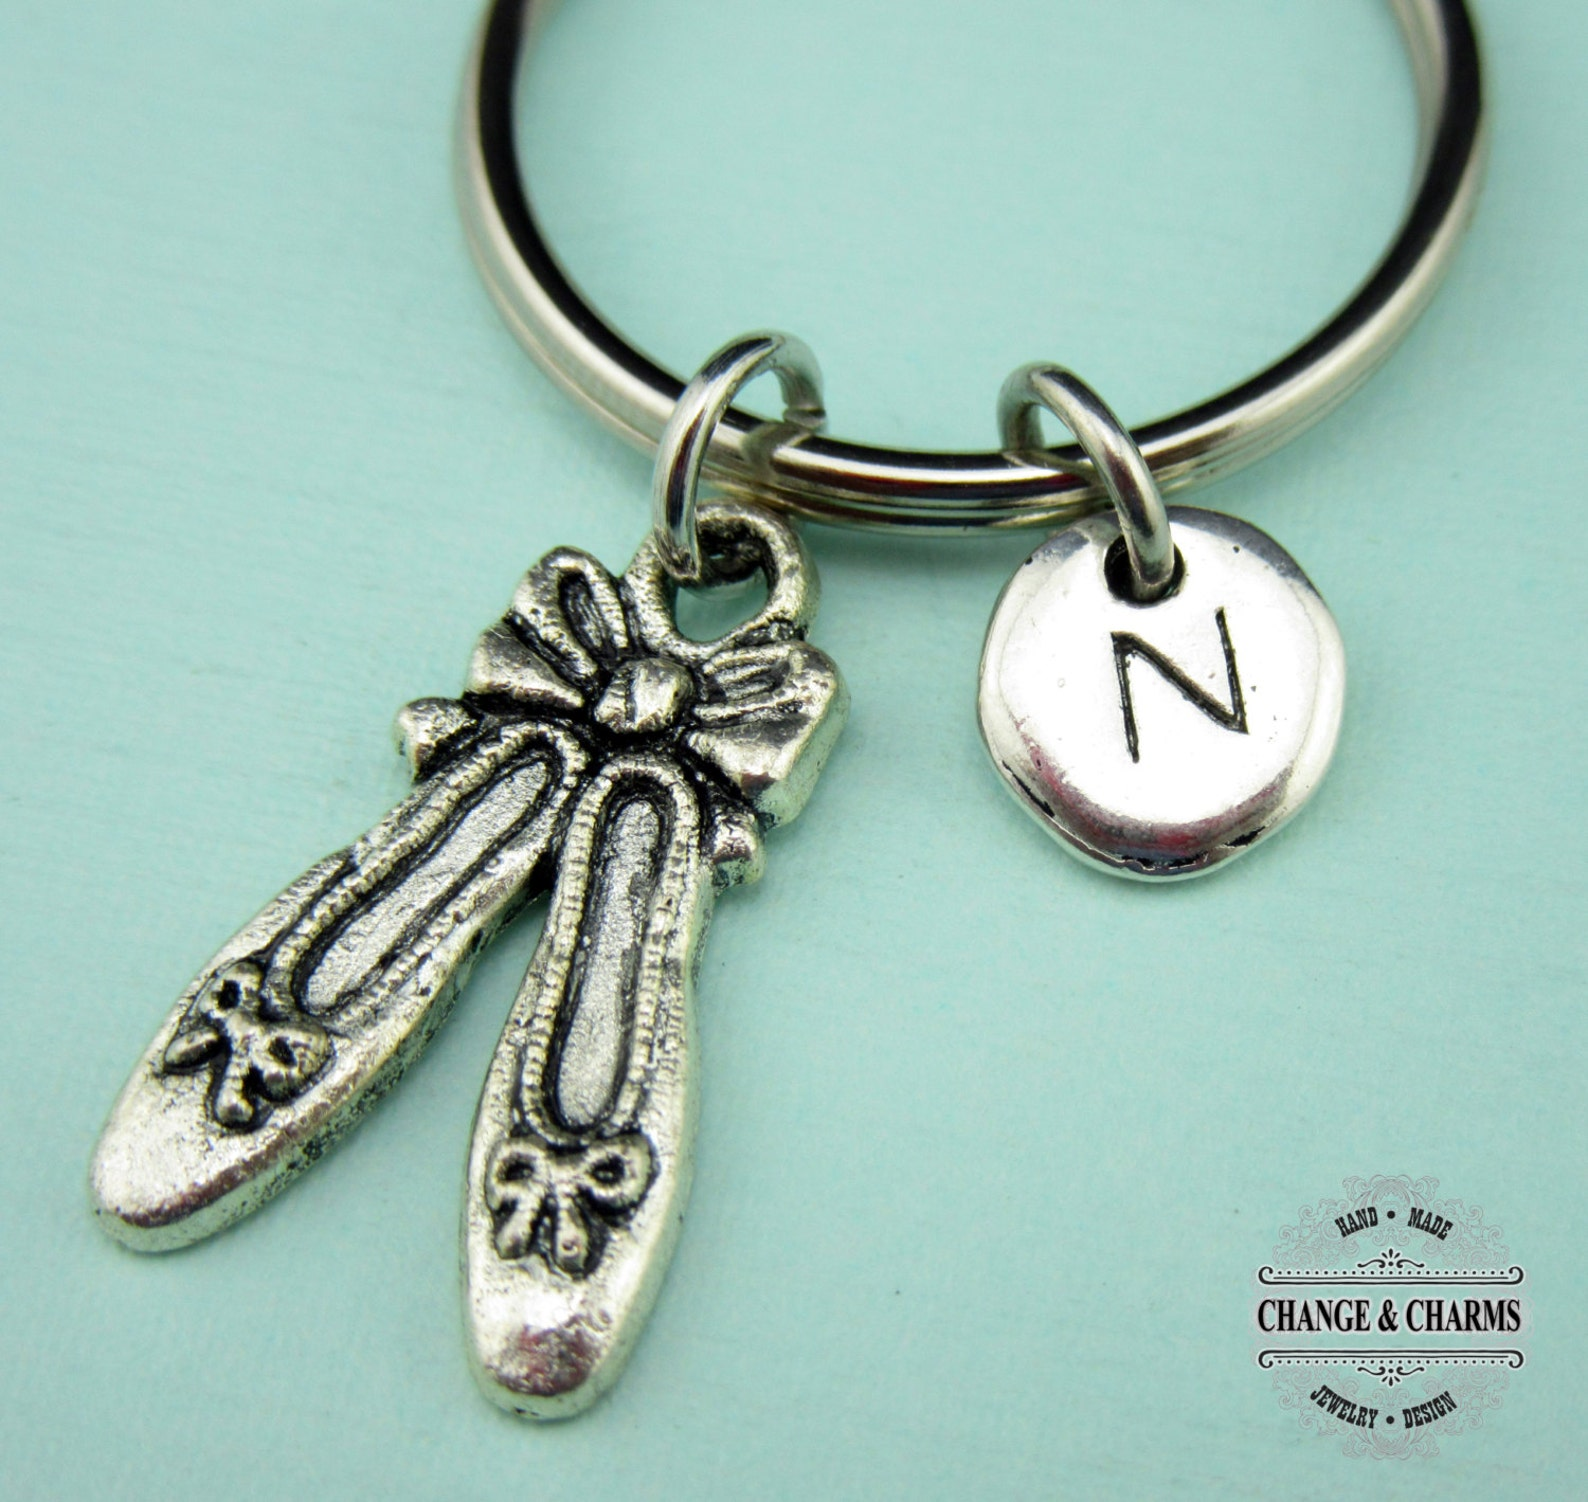 ballet keychain, ballet charm, ballet shoes, ballet, custom keychain, personalized gift, silver plated initial charm, keychain,